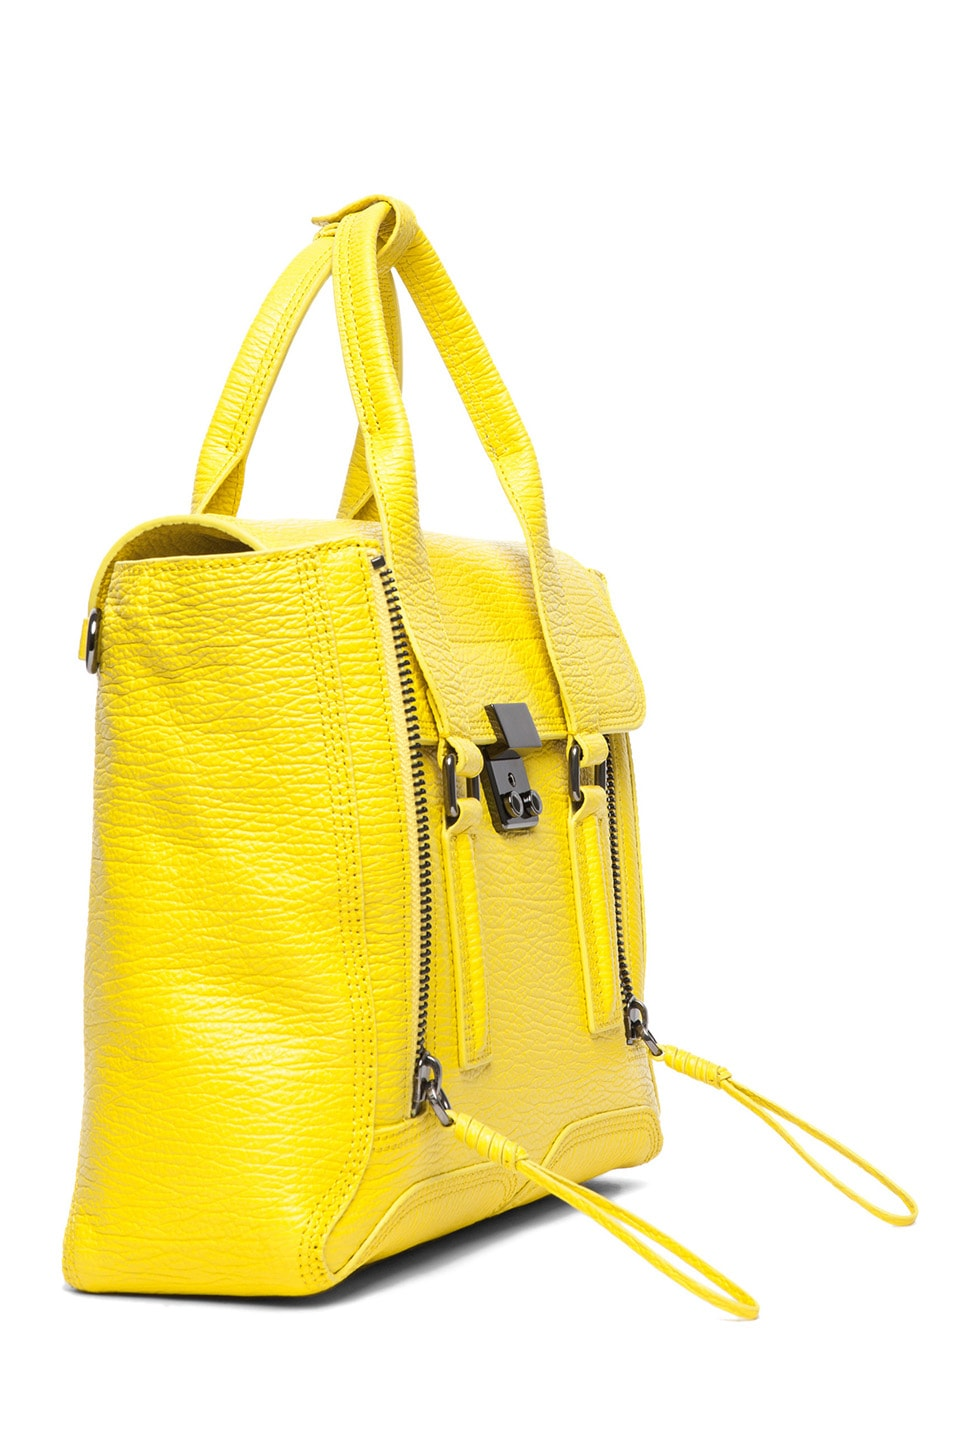 Image 3 of 3.1 phillip lim Medium Pashli Shark Embossed Satchel in Electric Yellow